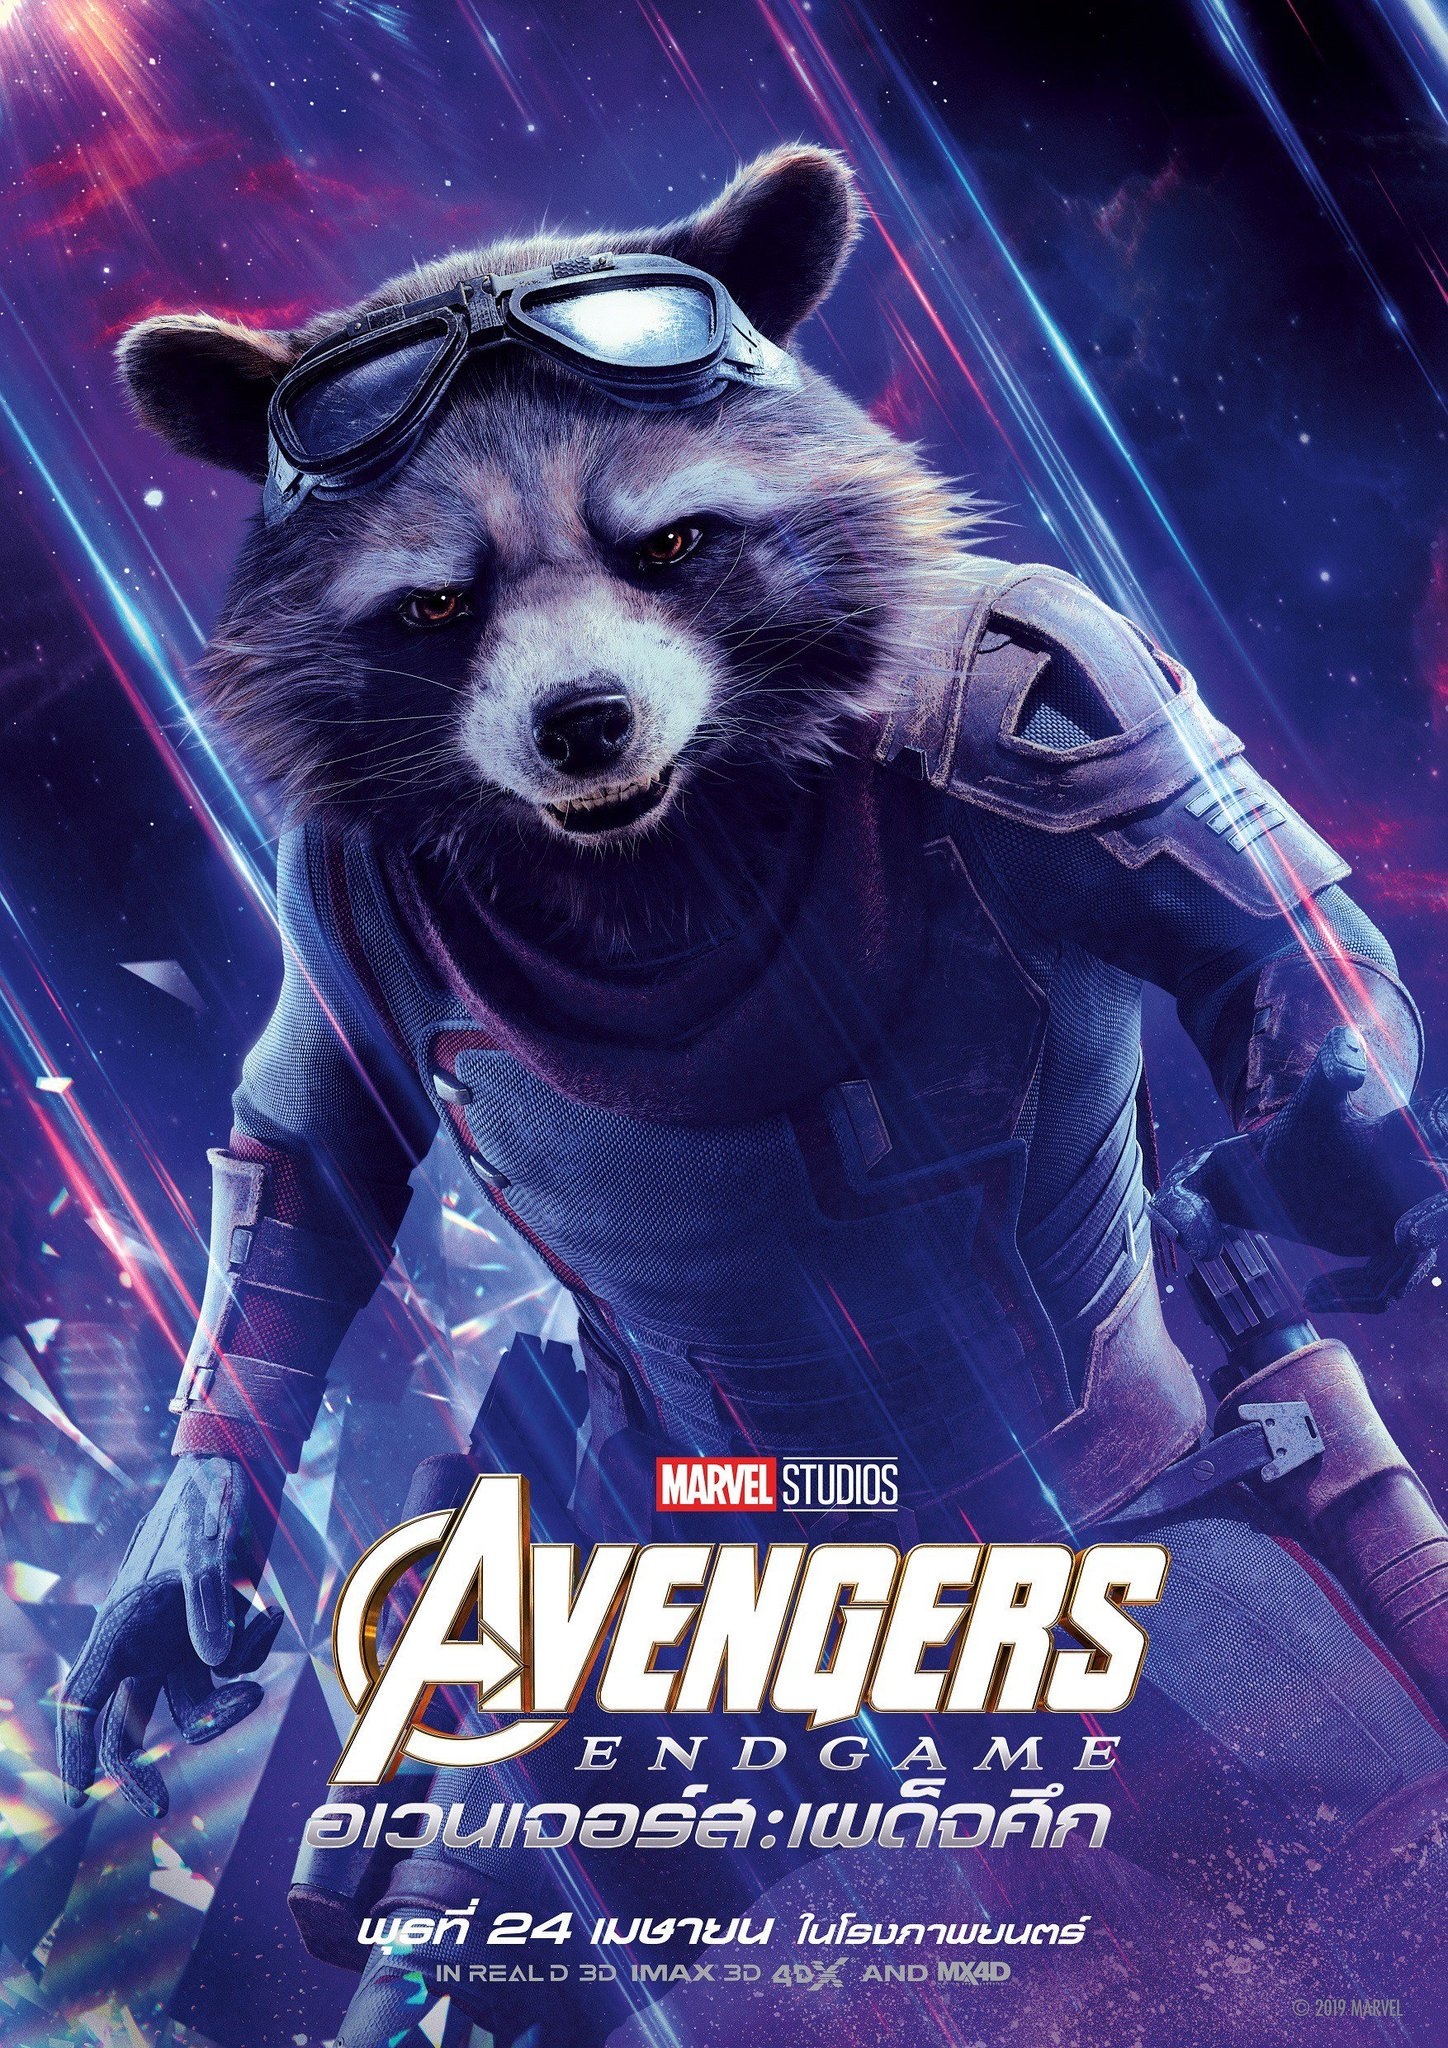 Image result for rocket poster endgame